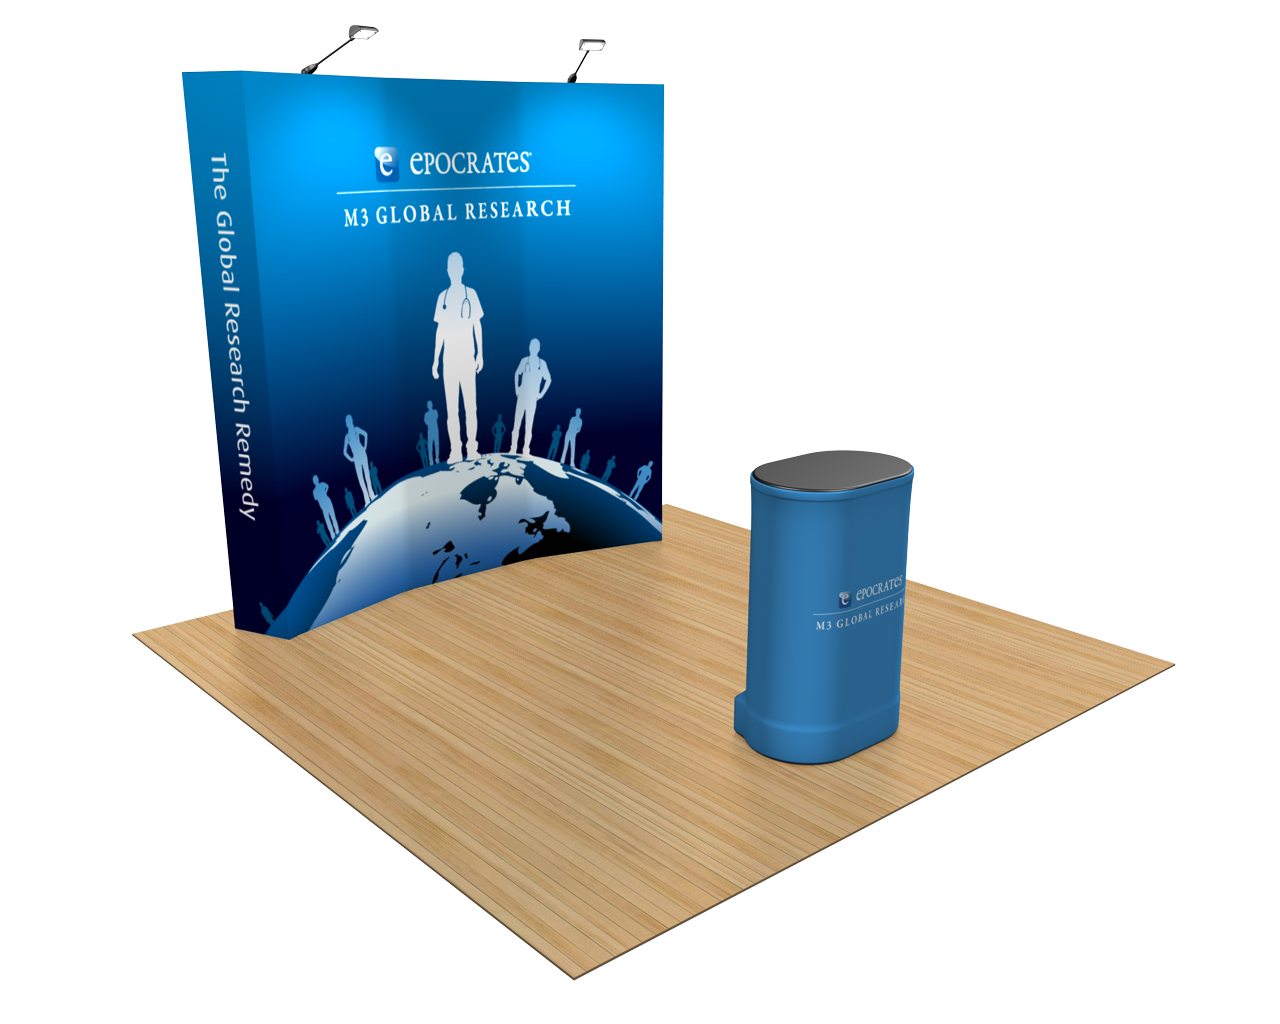 OneFabric Curved 8ft Trade Show Display Kit